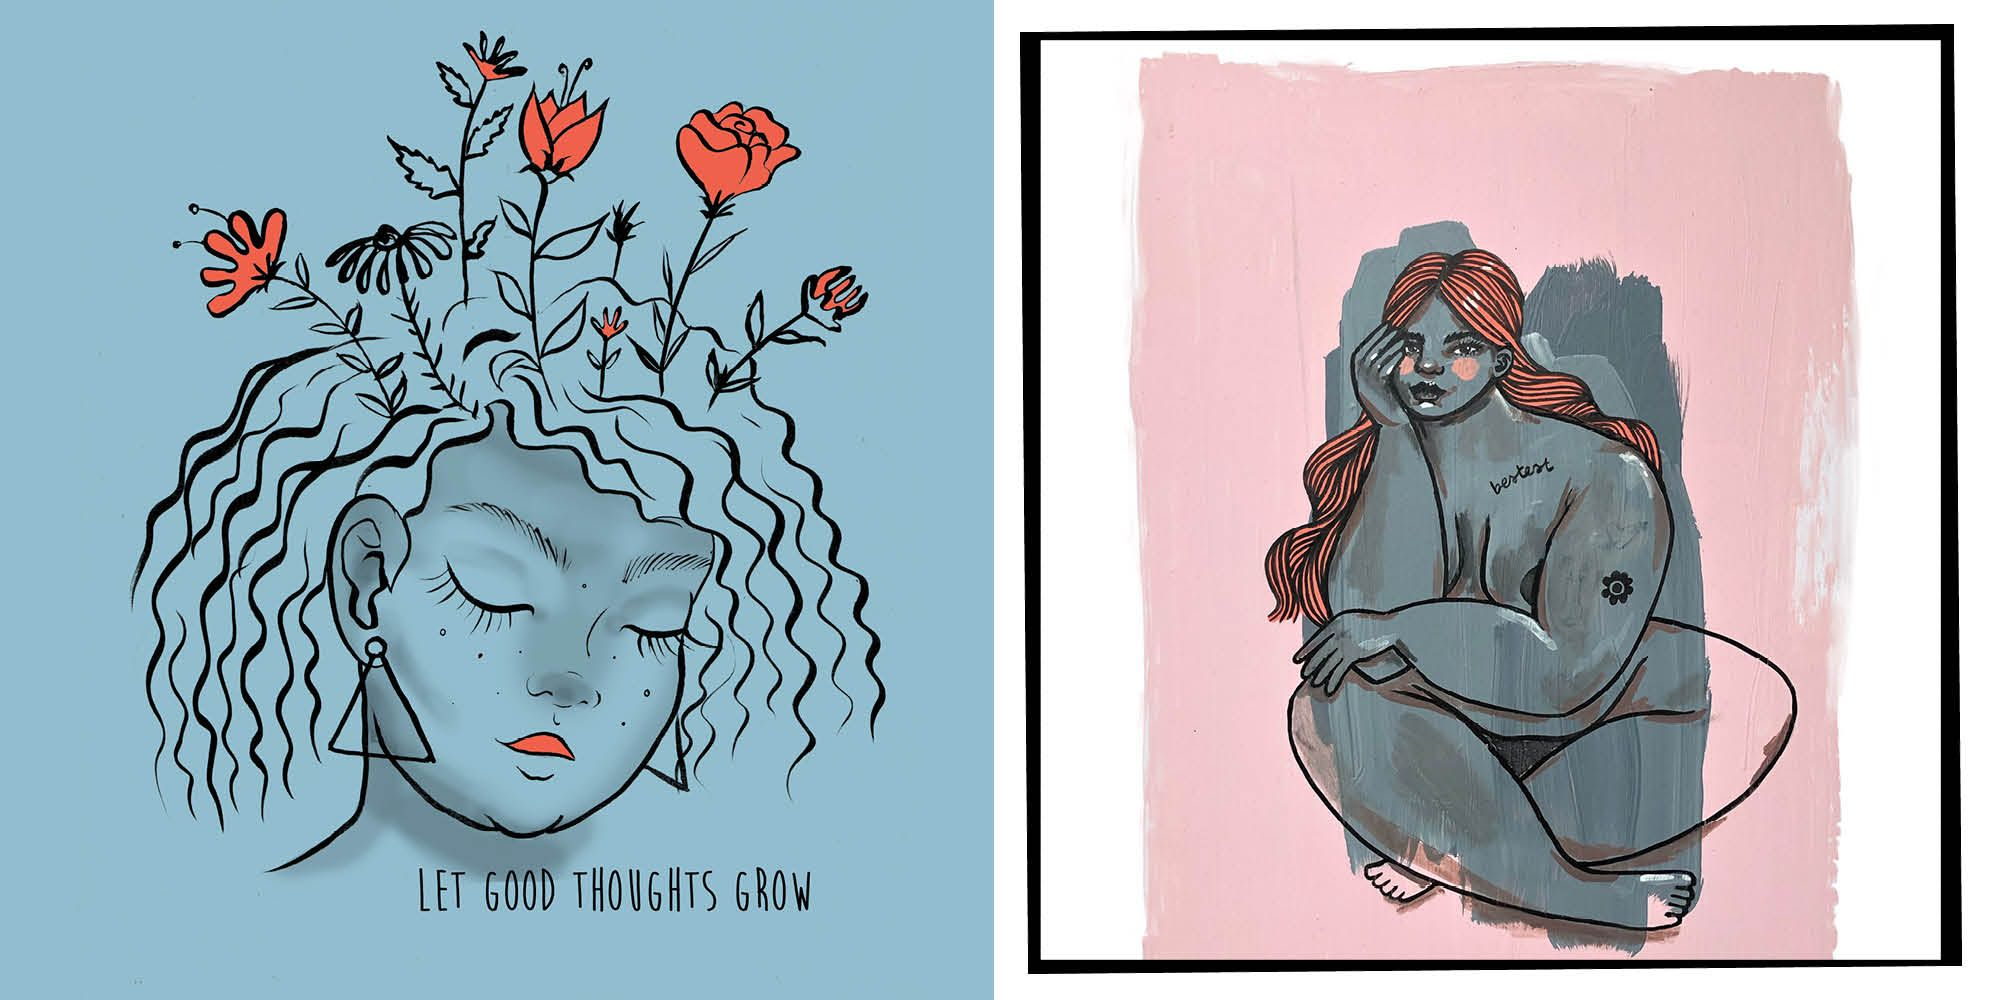 We Asked Five Illustrators To Draw What Body Image Means To Them